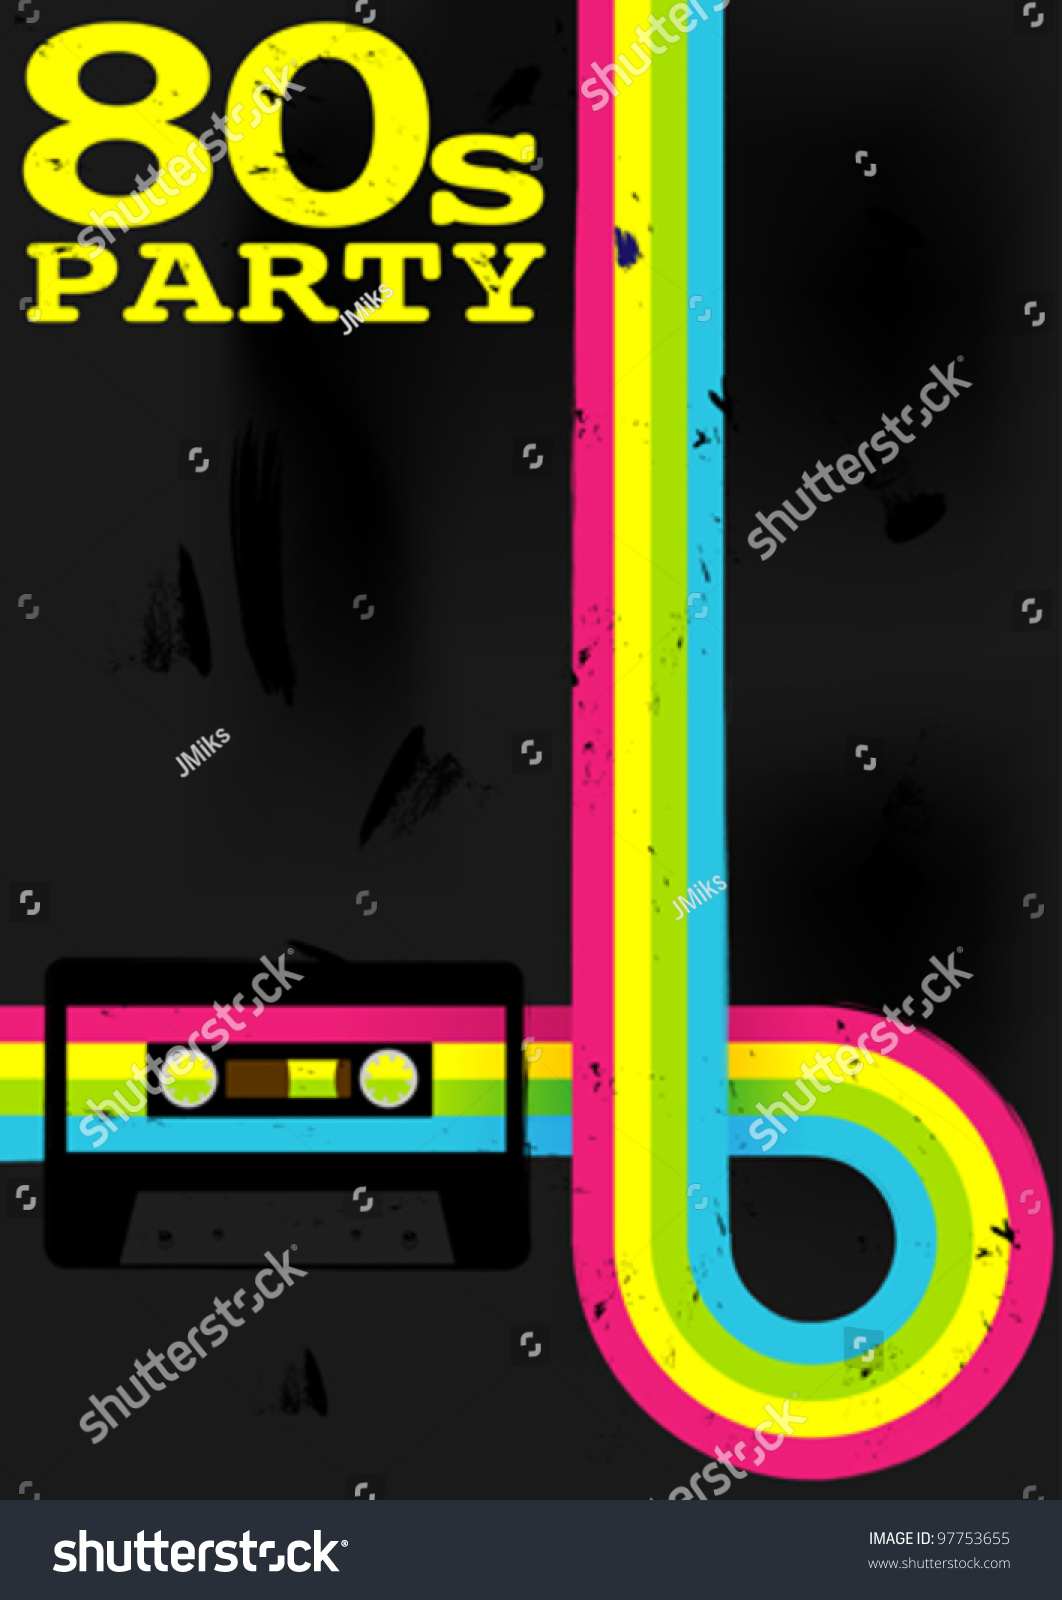 80s poster design - Retro Poster 80s Party Flyer With Audio Cassette Tape